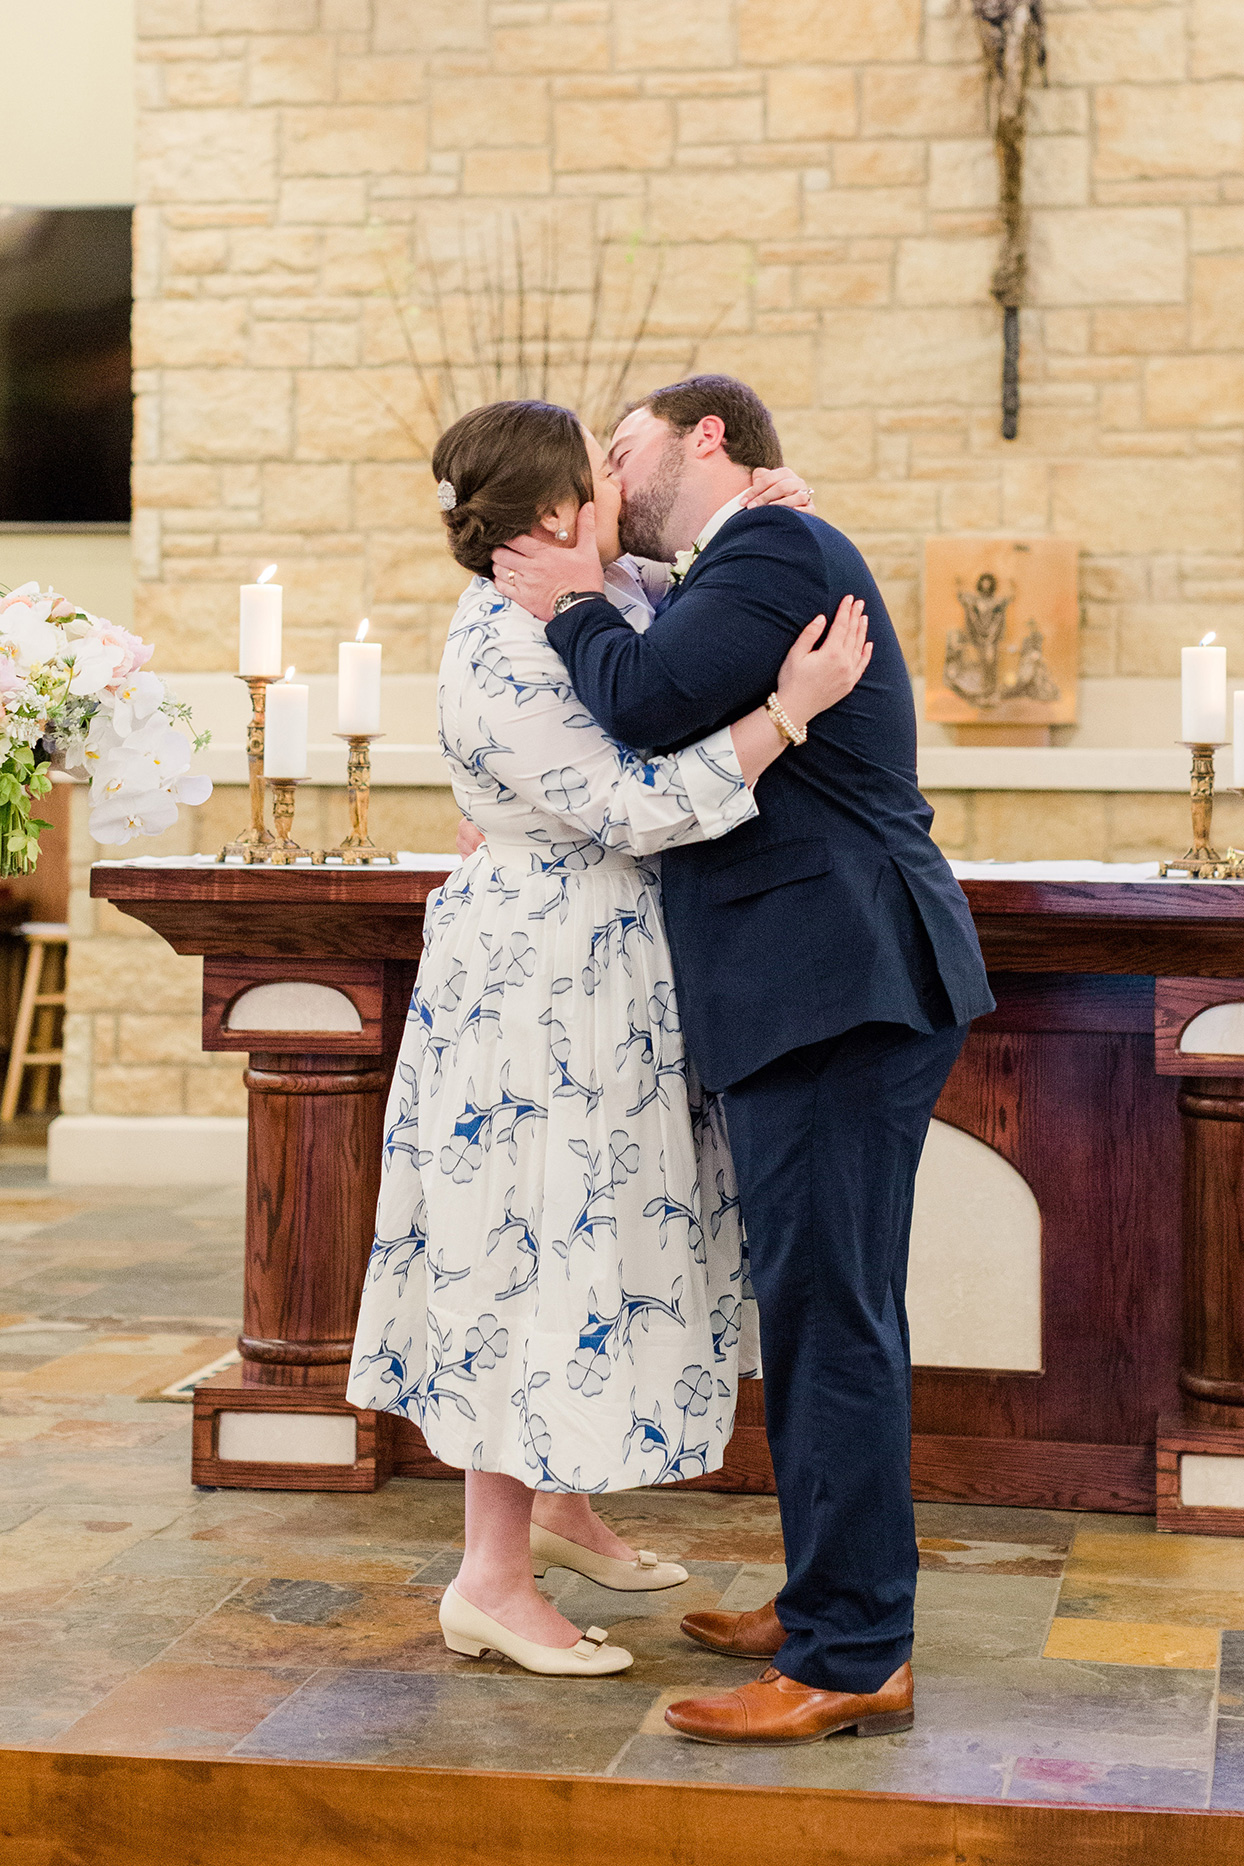 bride and groom kiss after wedding ceremony in church